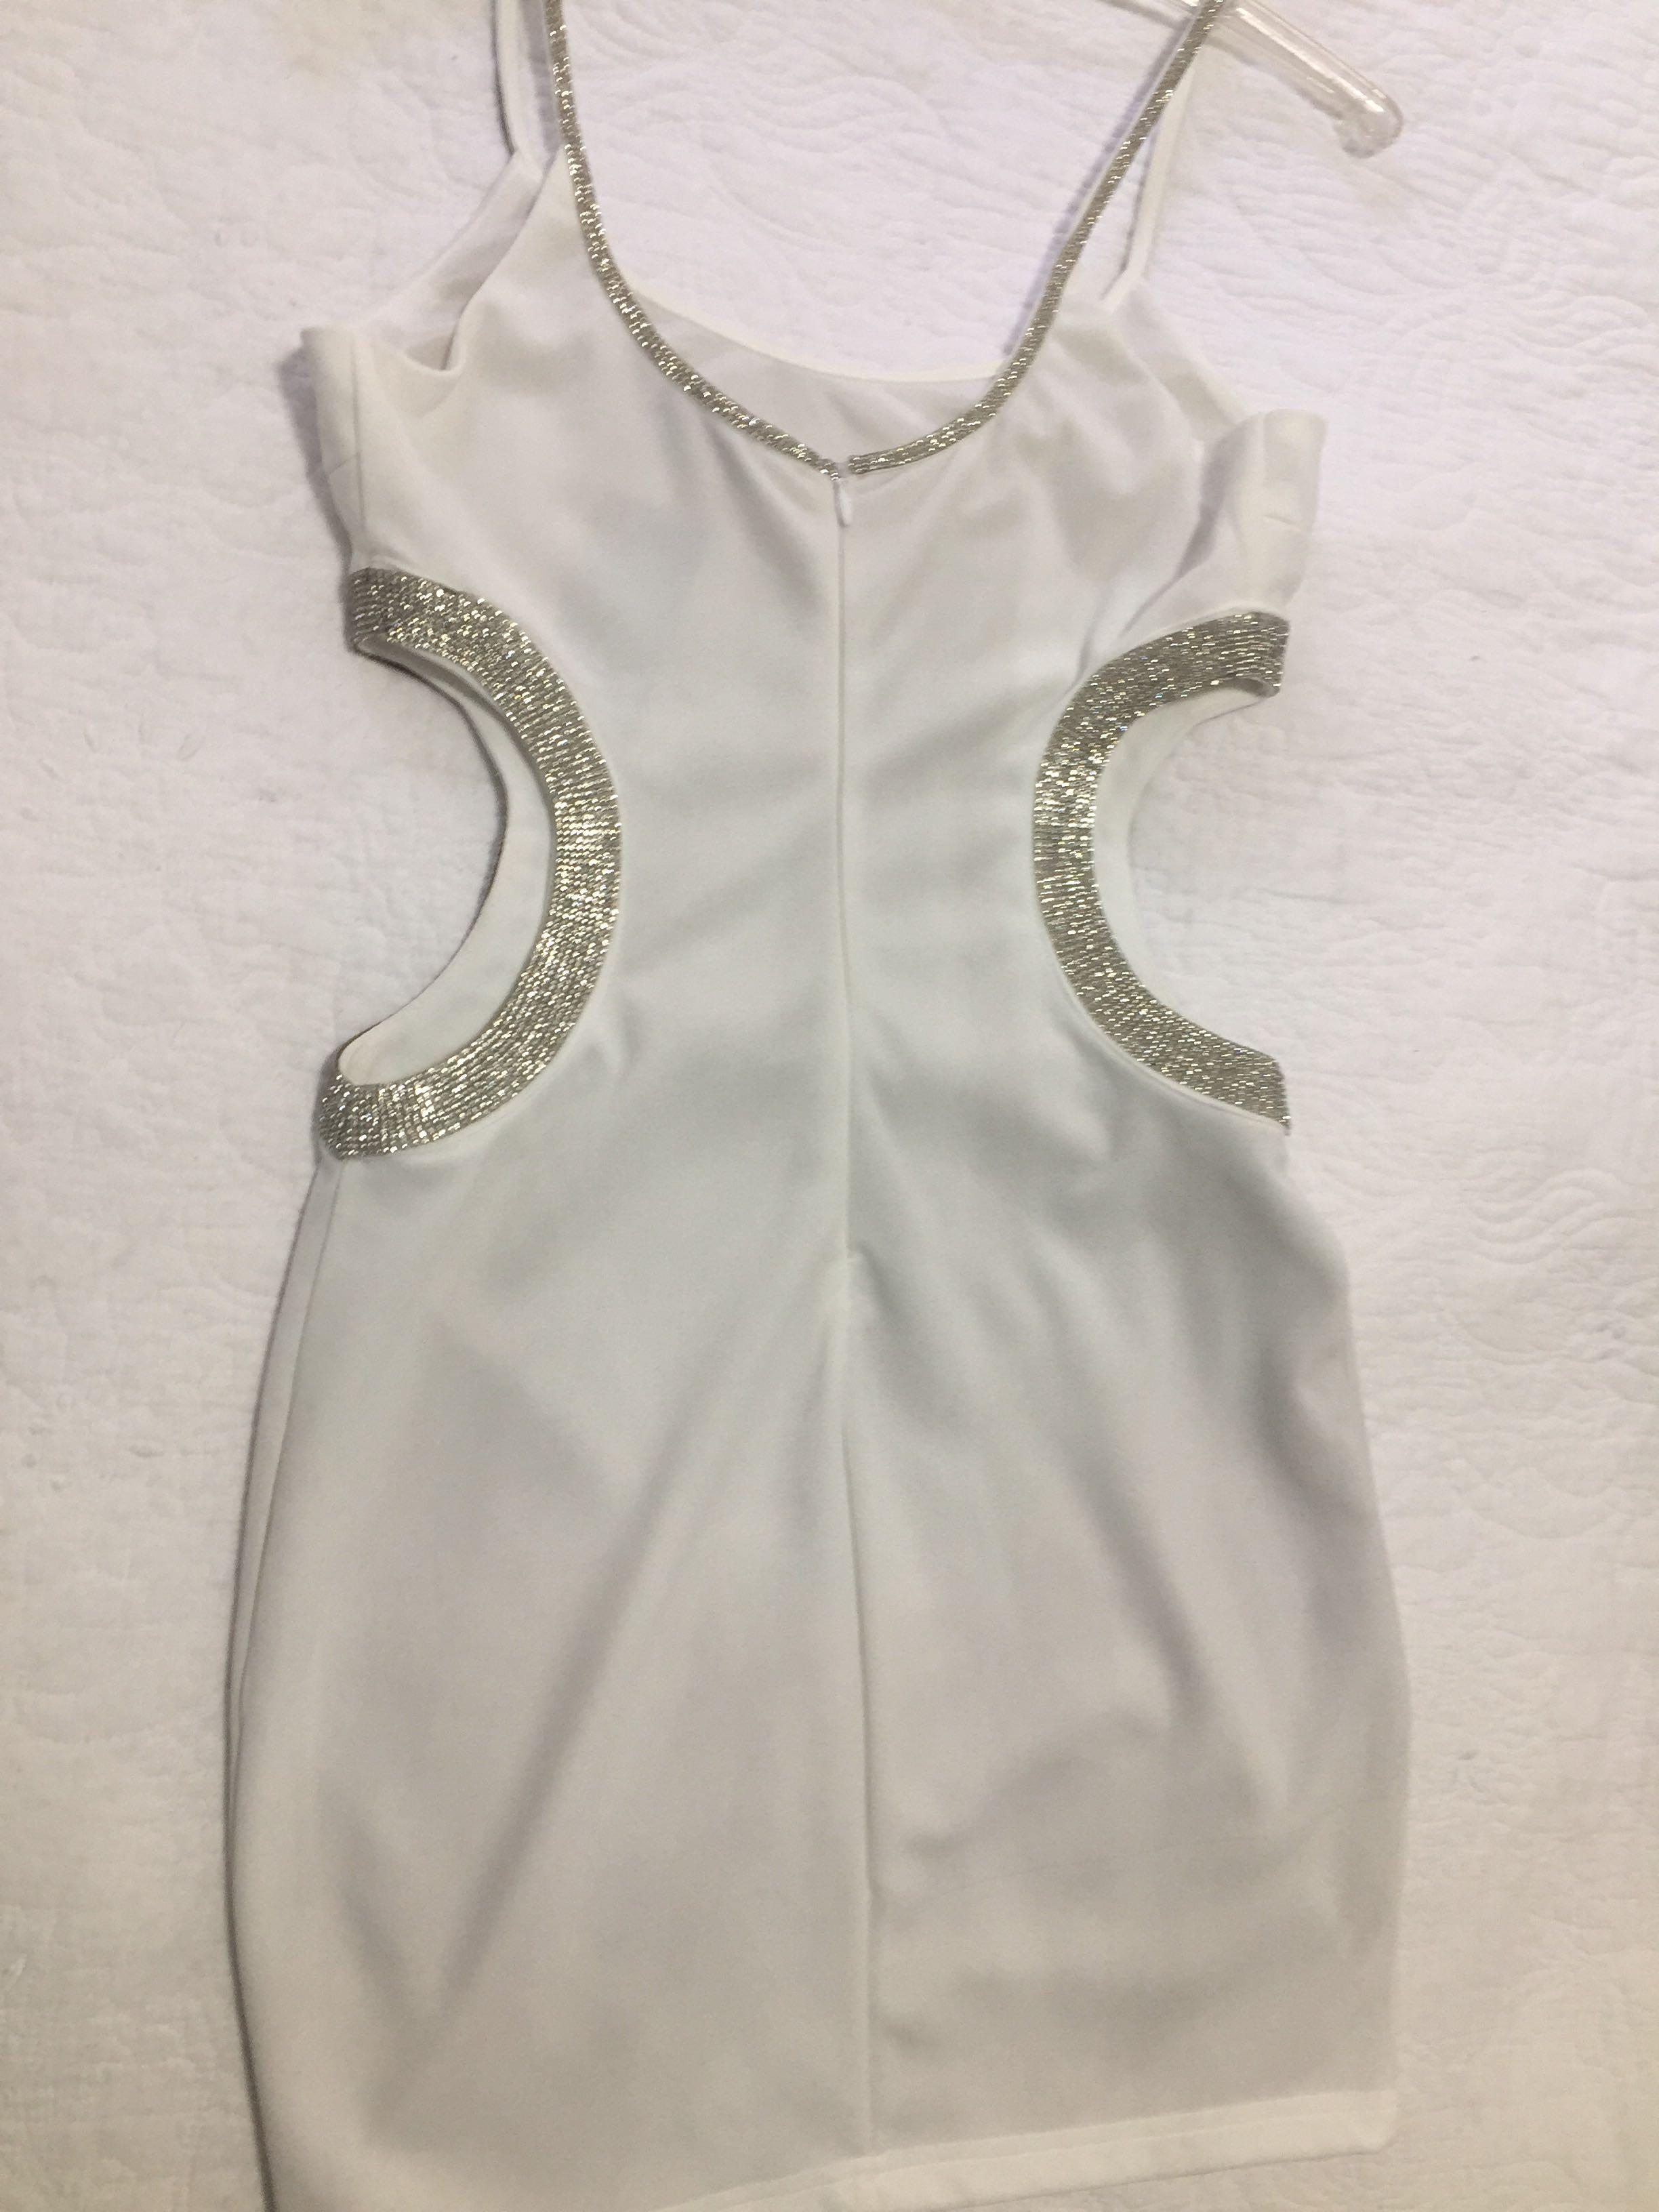 White cut out rhinestone cocktail dress S new with tags